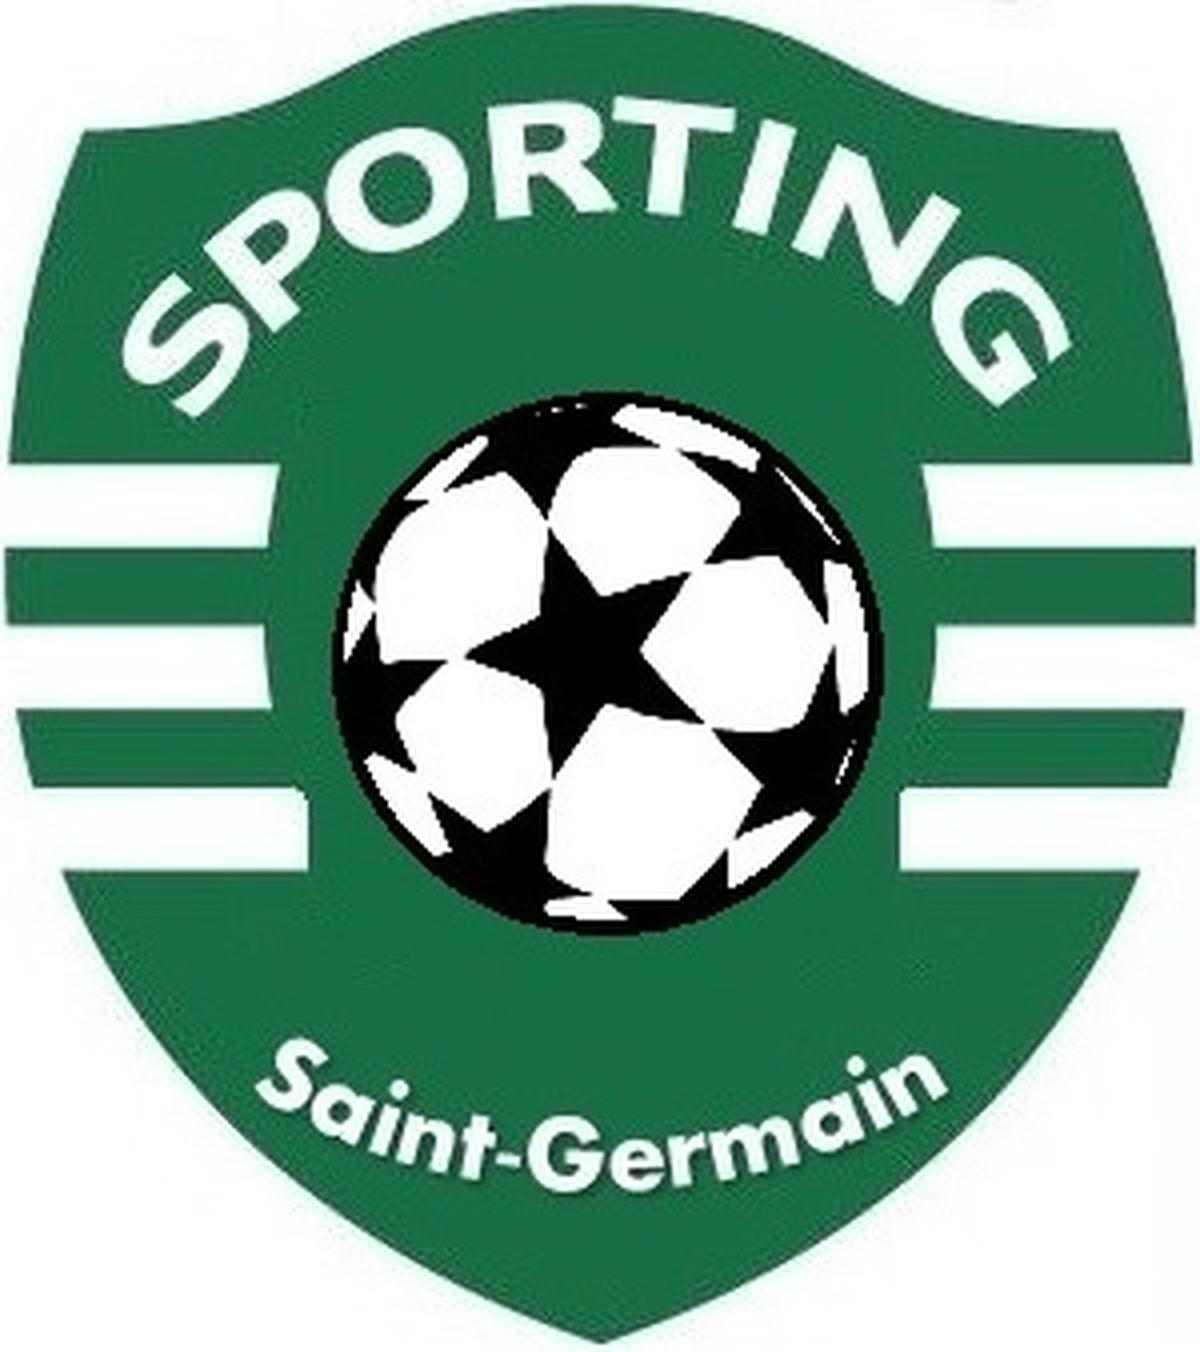 SPORTING FOOT A 7